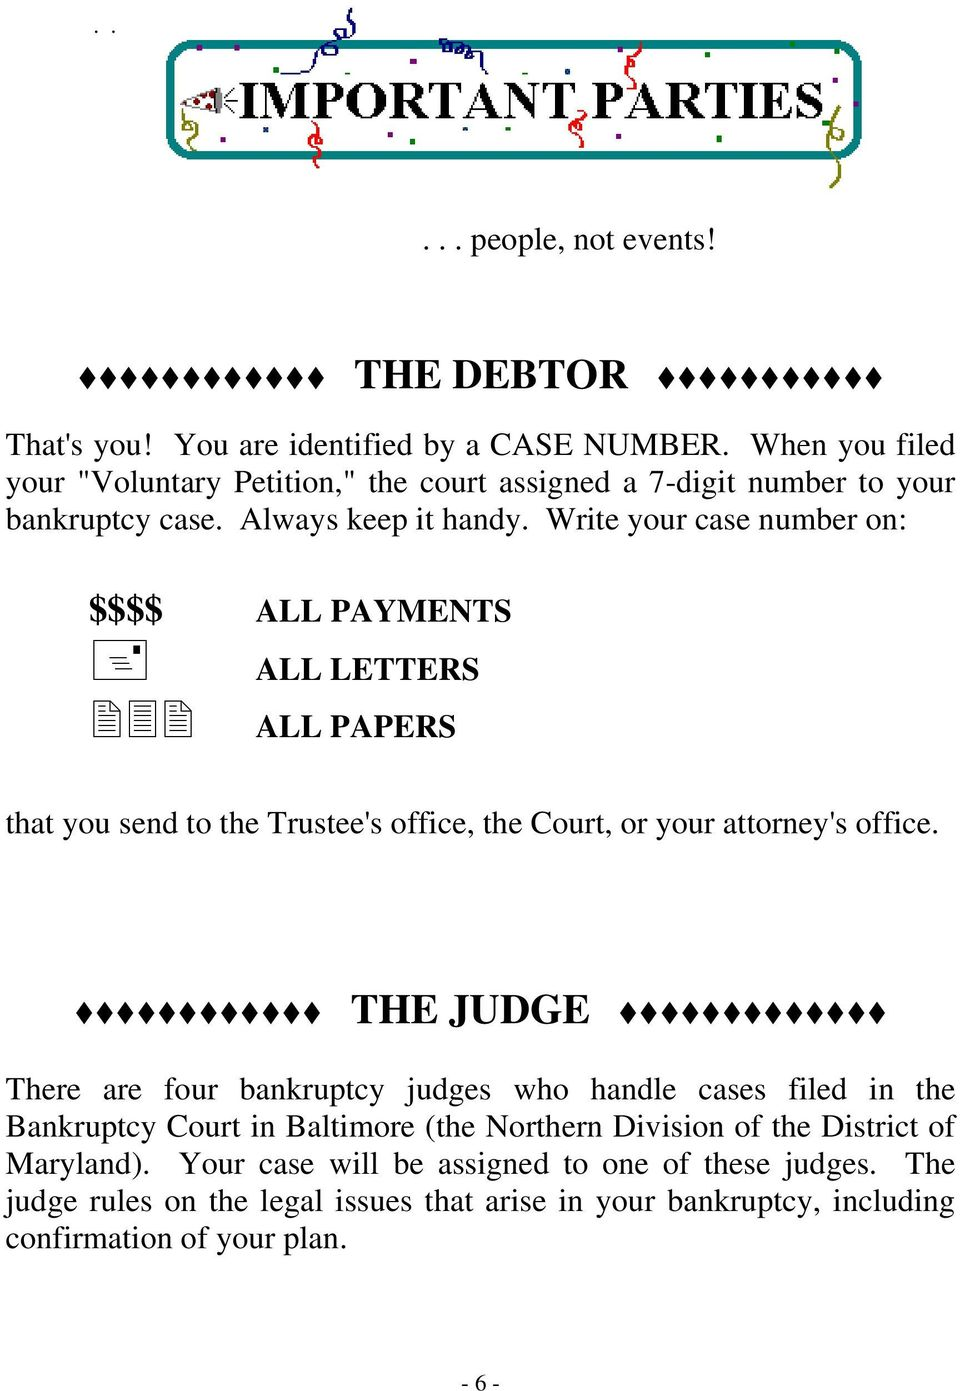 Write your case number on: $$$$ ALL PAYMENTS ALL LETTERS ALL PAPERS that you send to the Trustee's office, the Court, or your attorney's office.